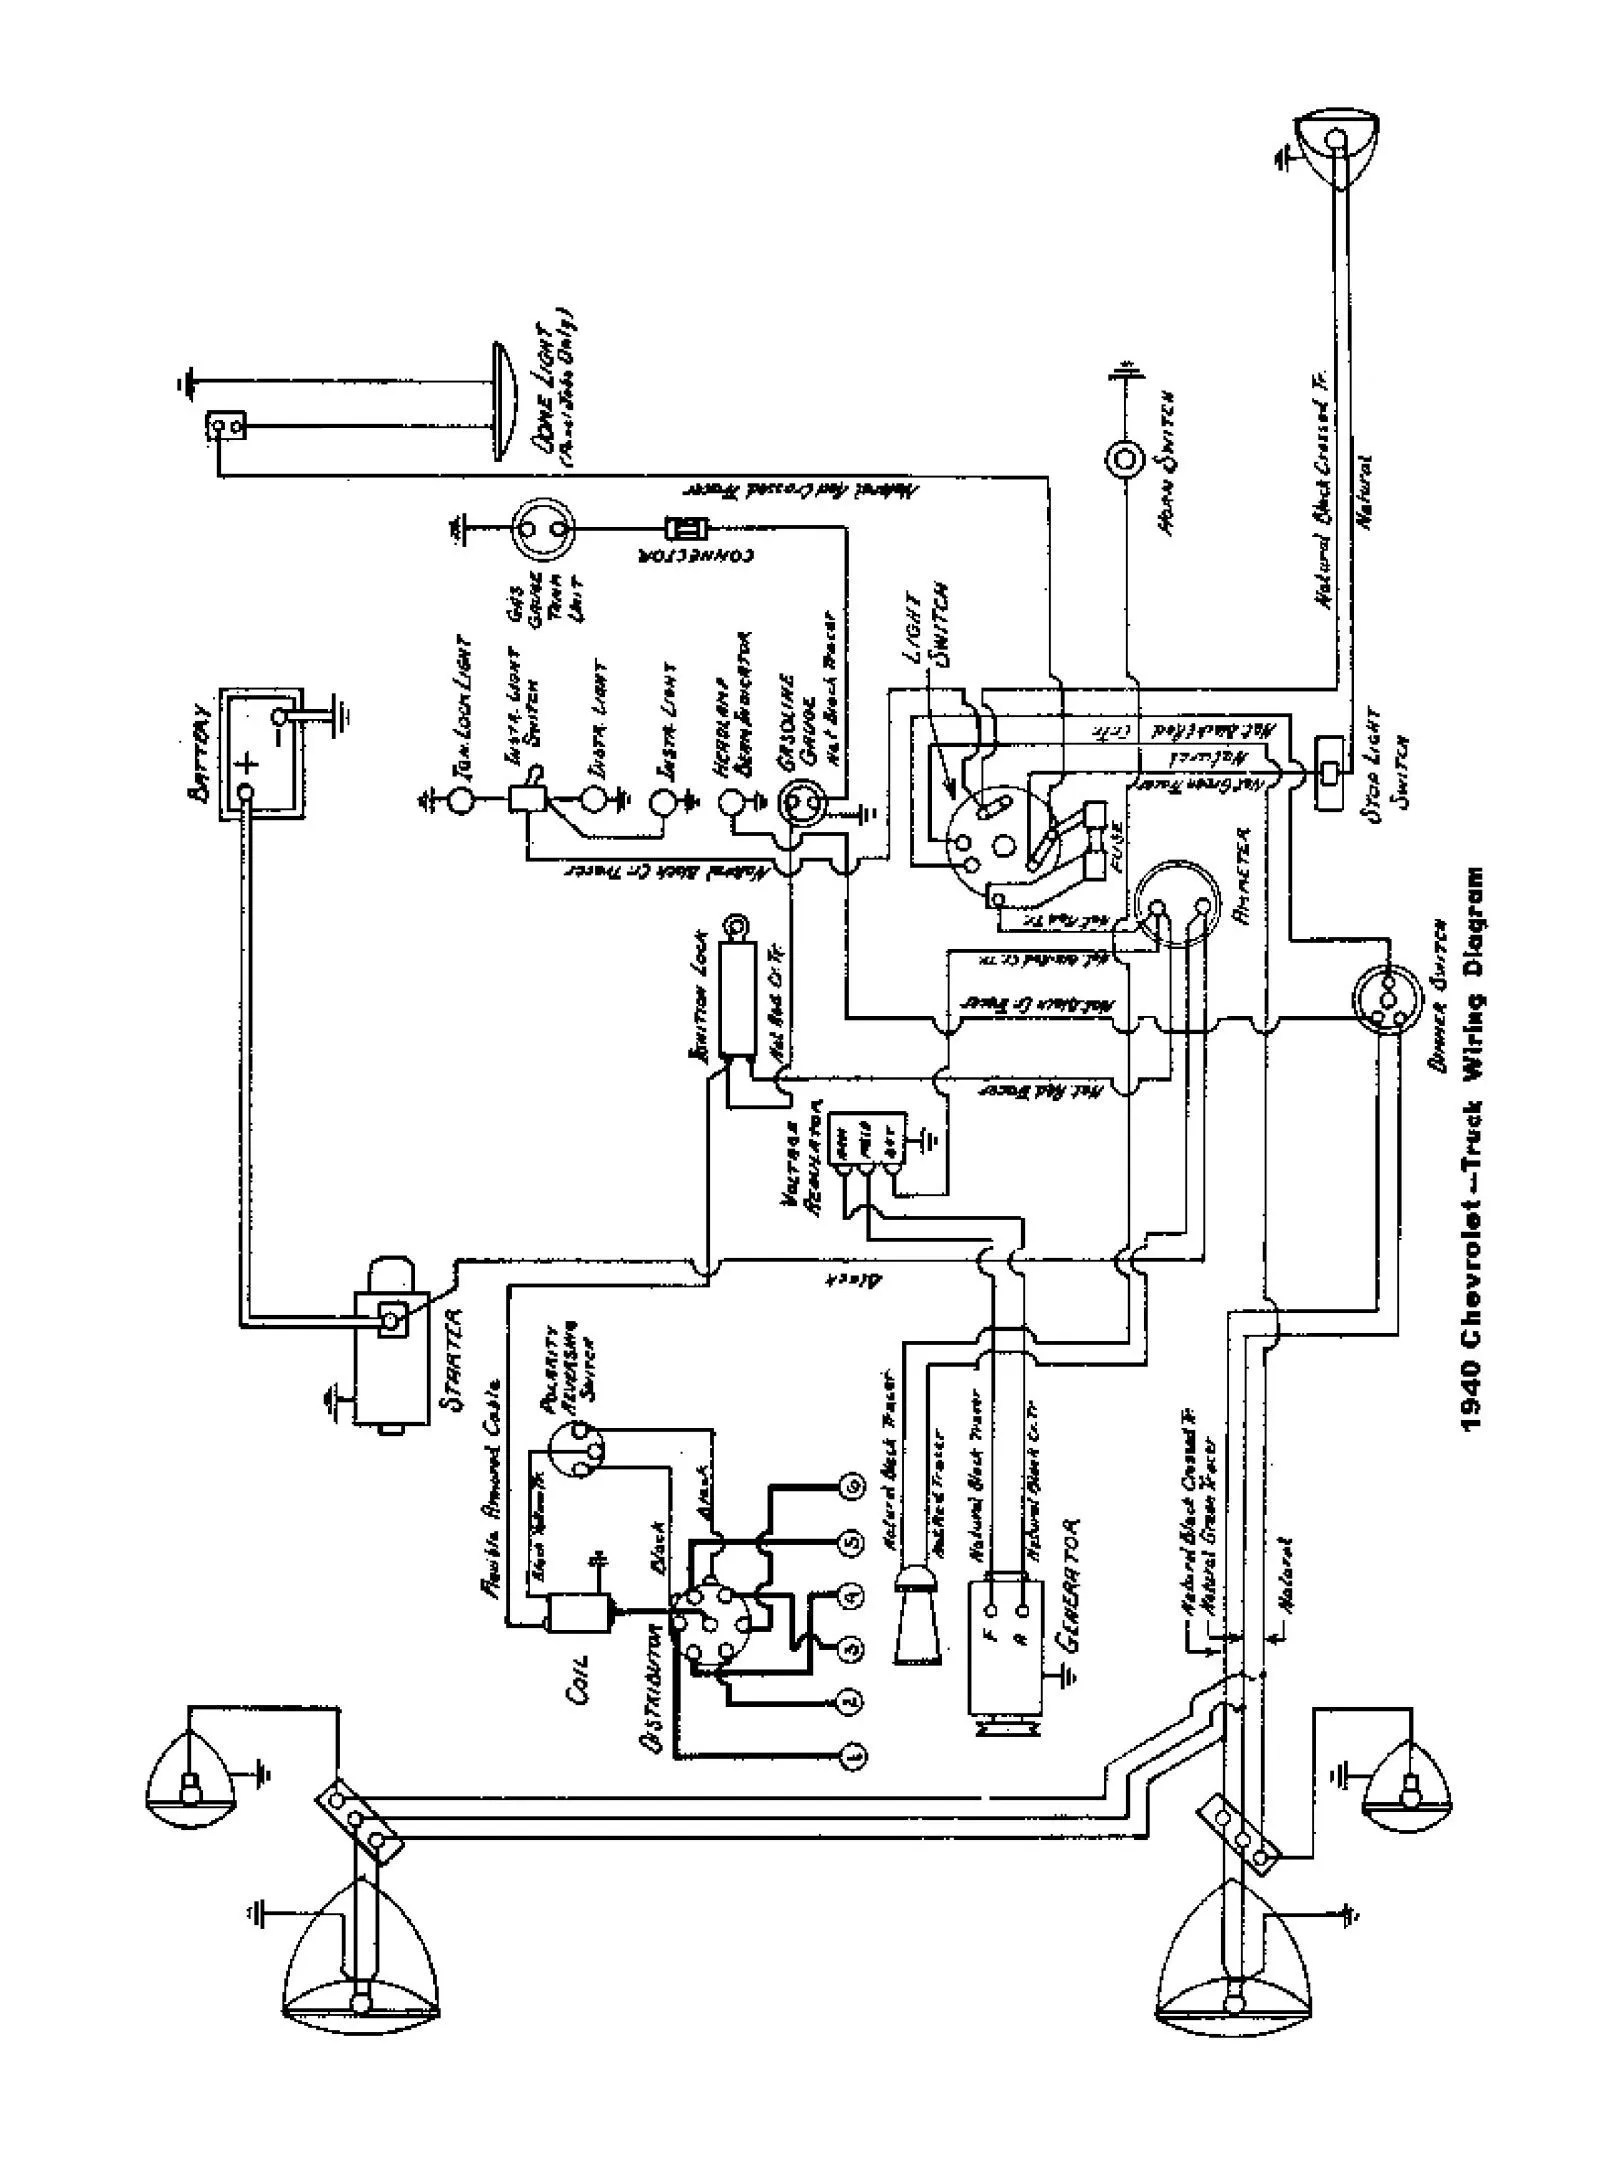 hight resolution of willys station wagon wiring diagram wiring libraryrelated with 1953 chevy wiring diagram